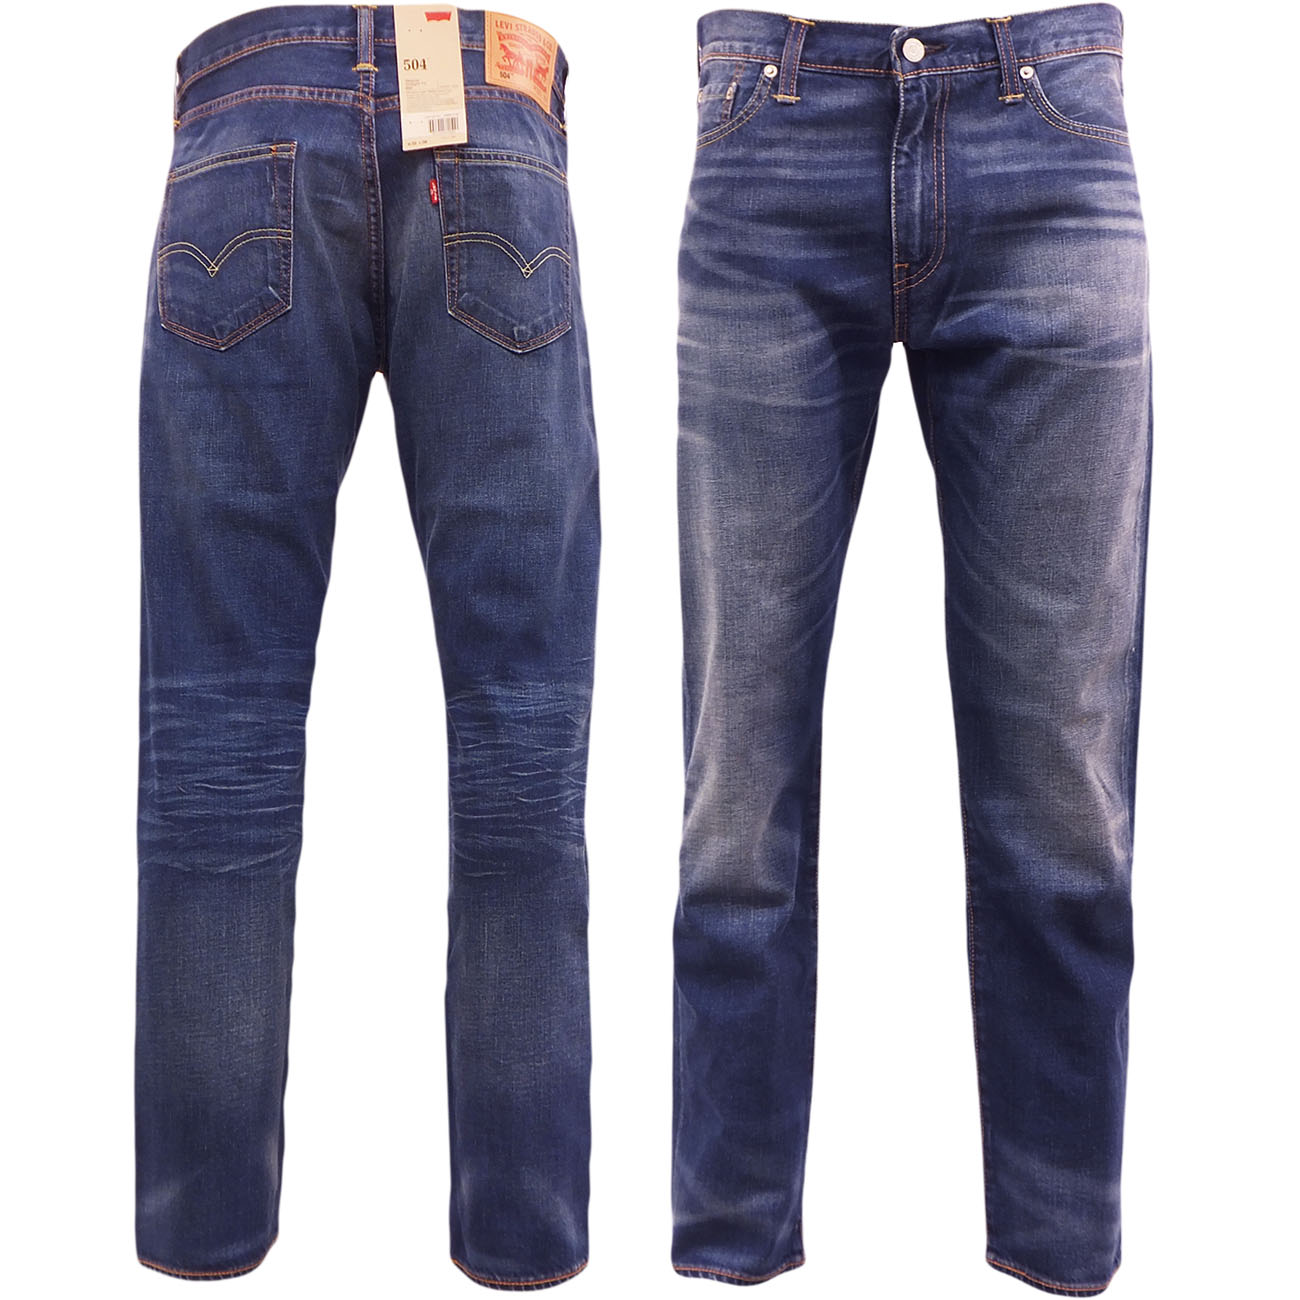 de5ec8b7 Sentinel Levi 504 Regular Straight Fit Jean Levi's Denim Trouser Pant Jeans